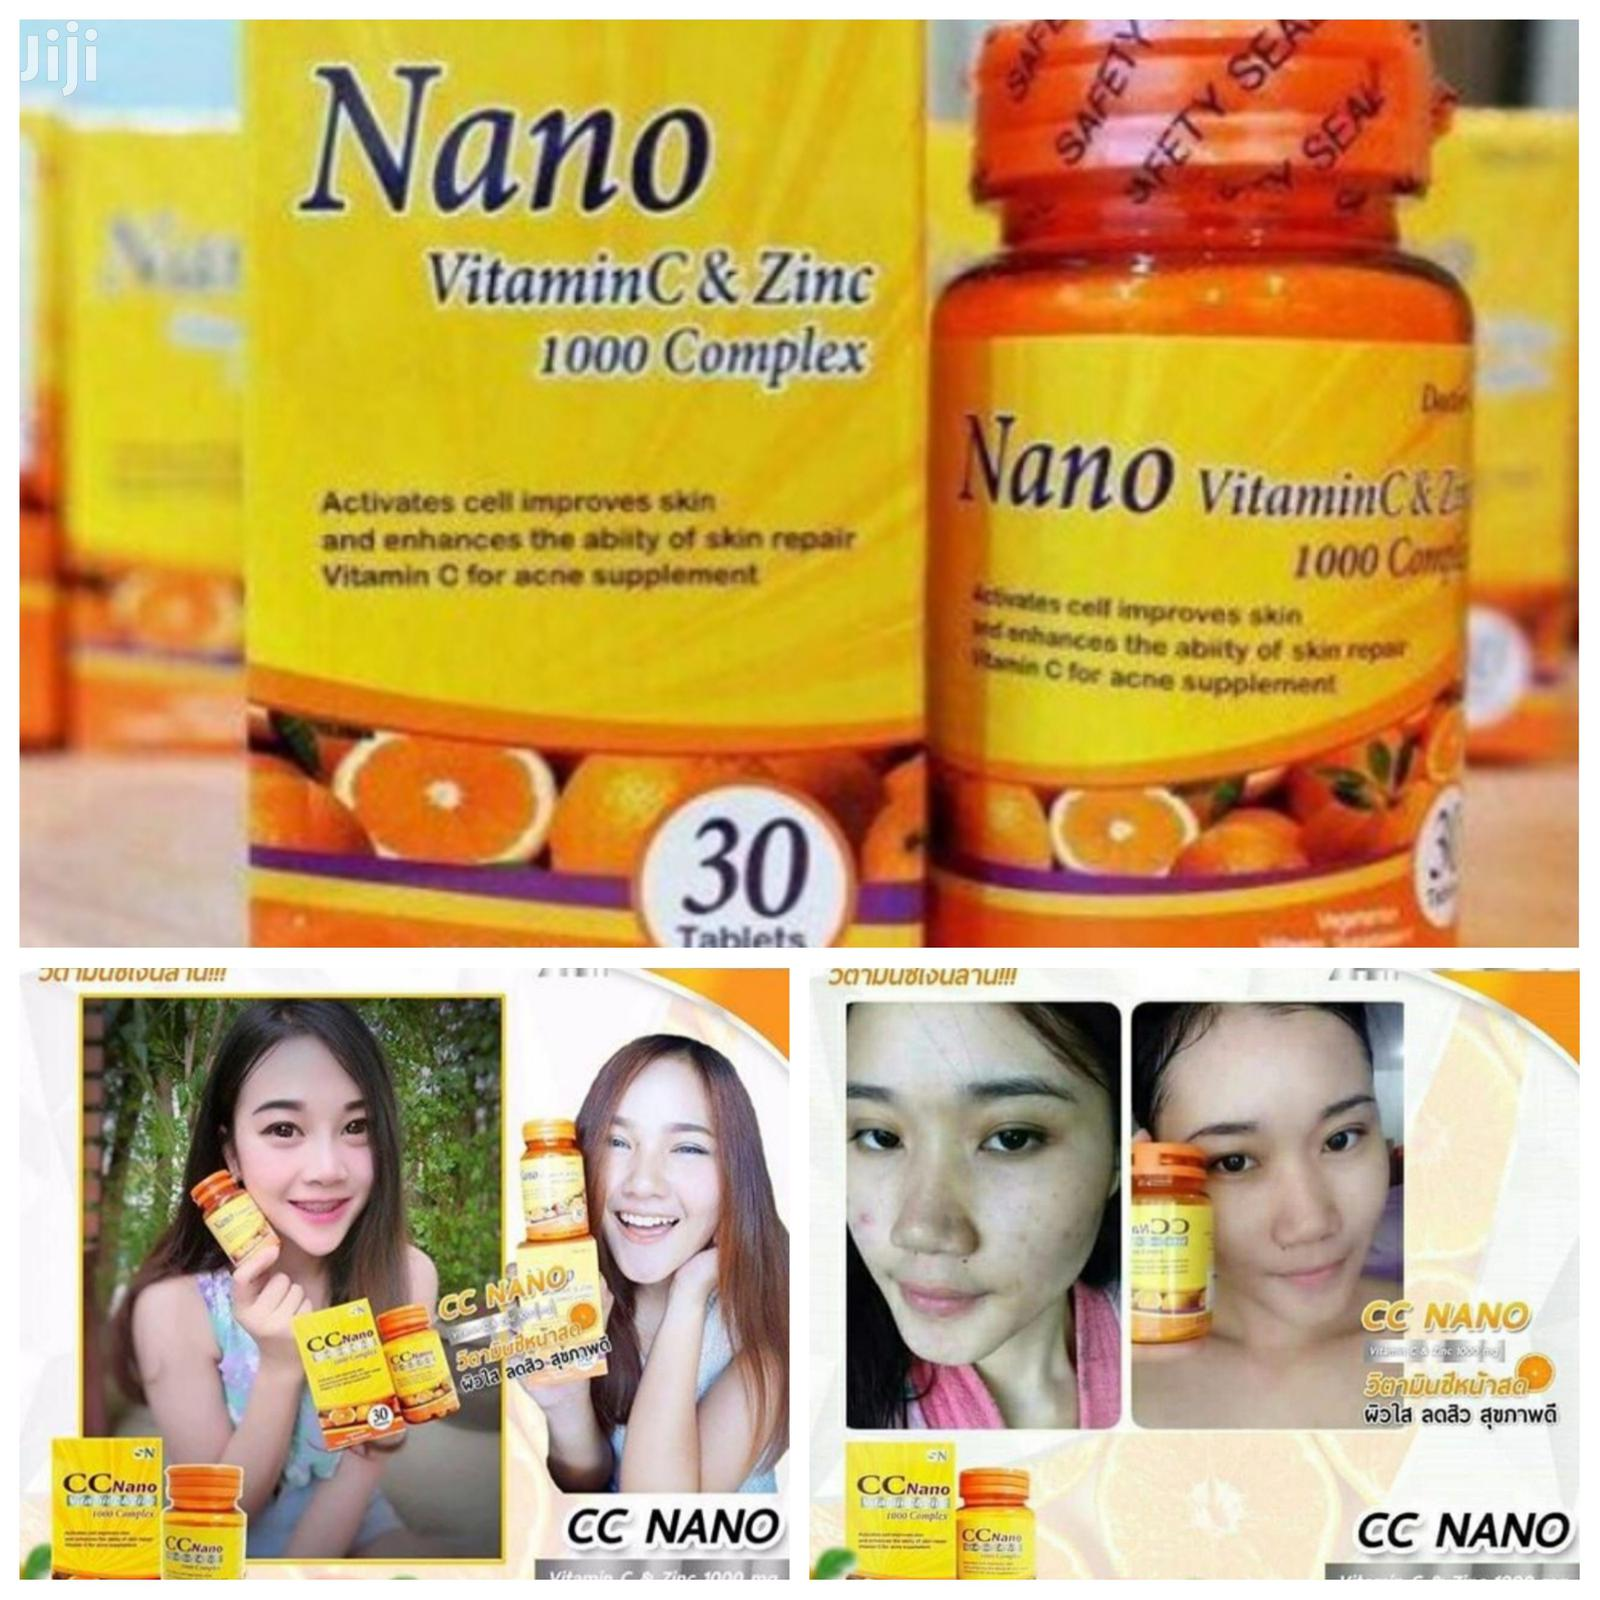 CC Nano Vitamin C and Zinc 1000mg Complex Brightening C Skin | Vitamins & Supplements for sale in Achimota, Greater Accra, Ghana